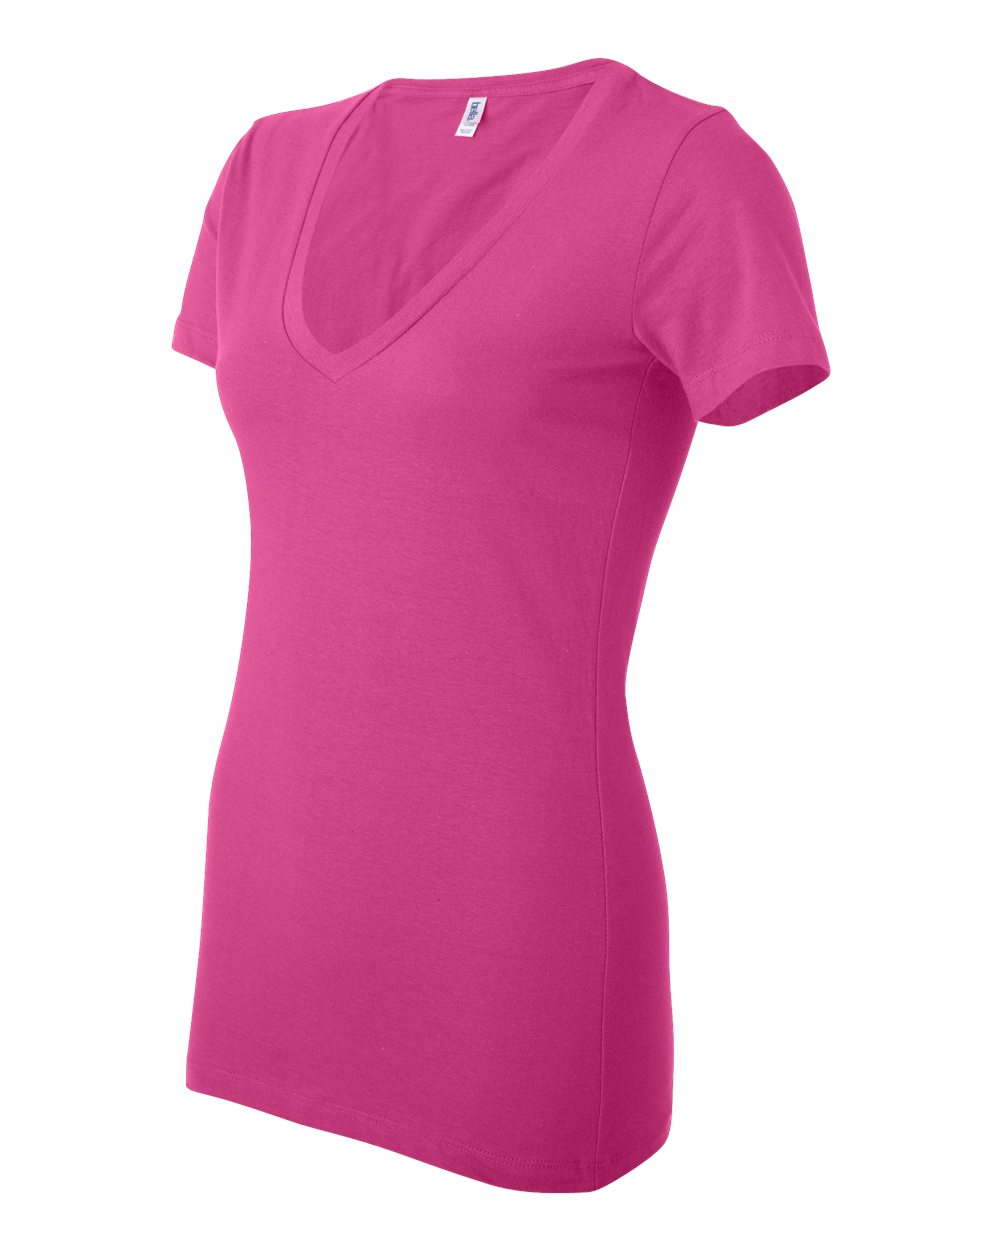 Bella-Canvas-Women-039-s-Jersey-Short-Sleeve-Deep-V-Neck-T-Shirt-B6035-S-2XL thumbnail 57